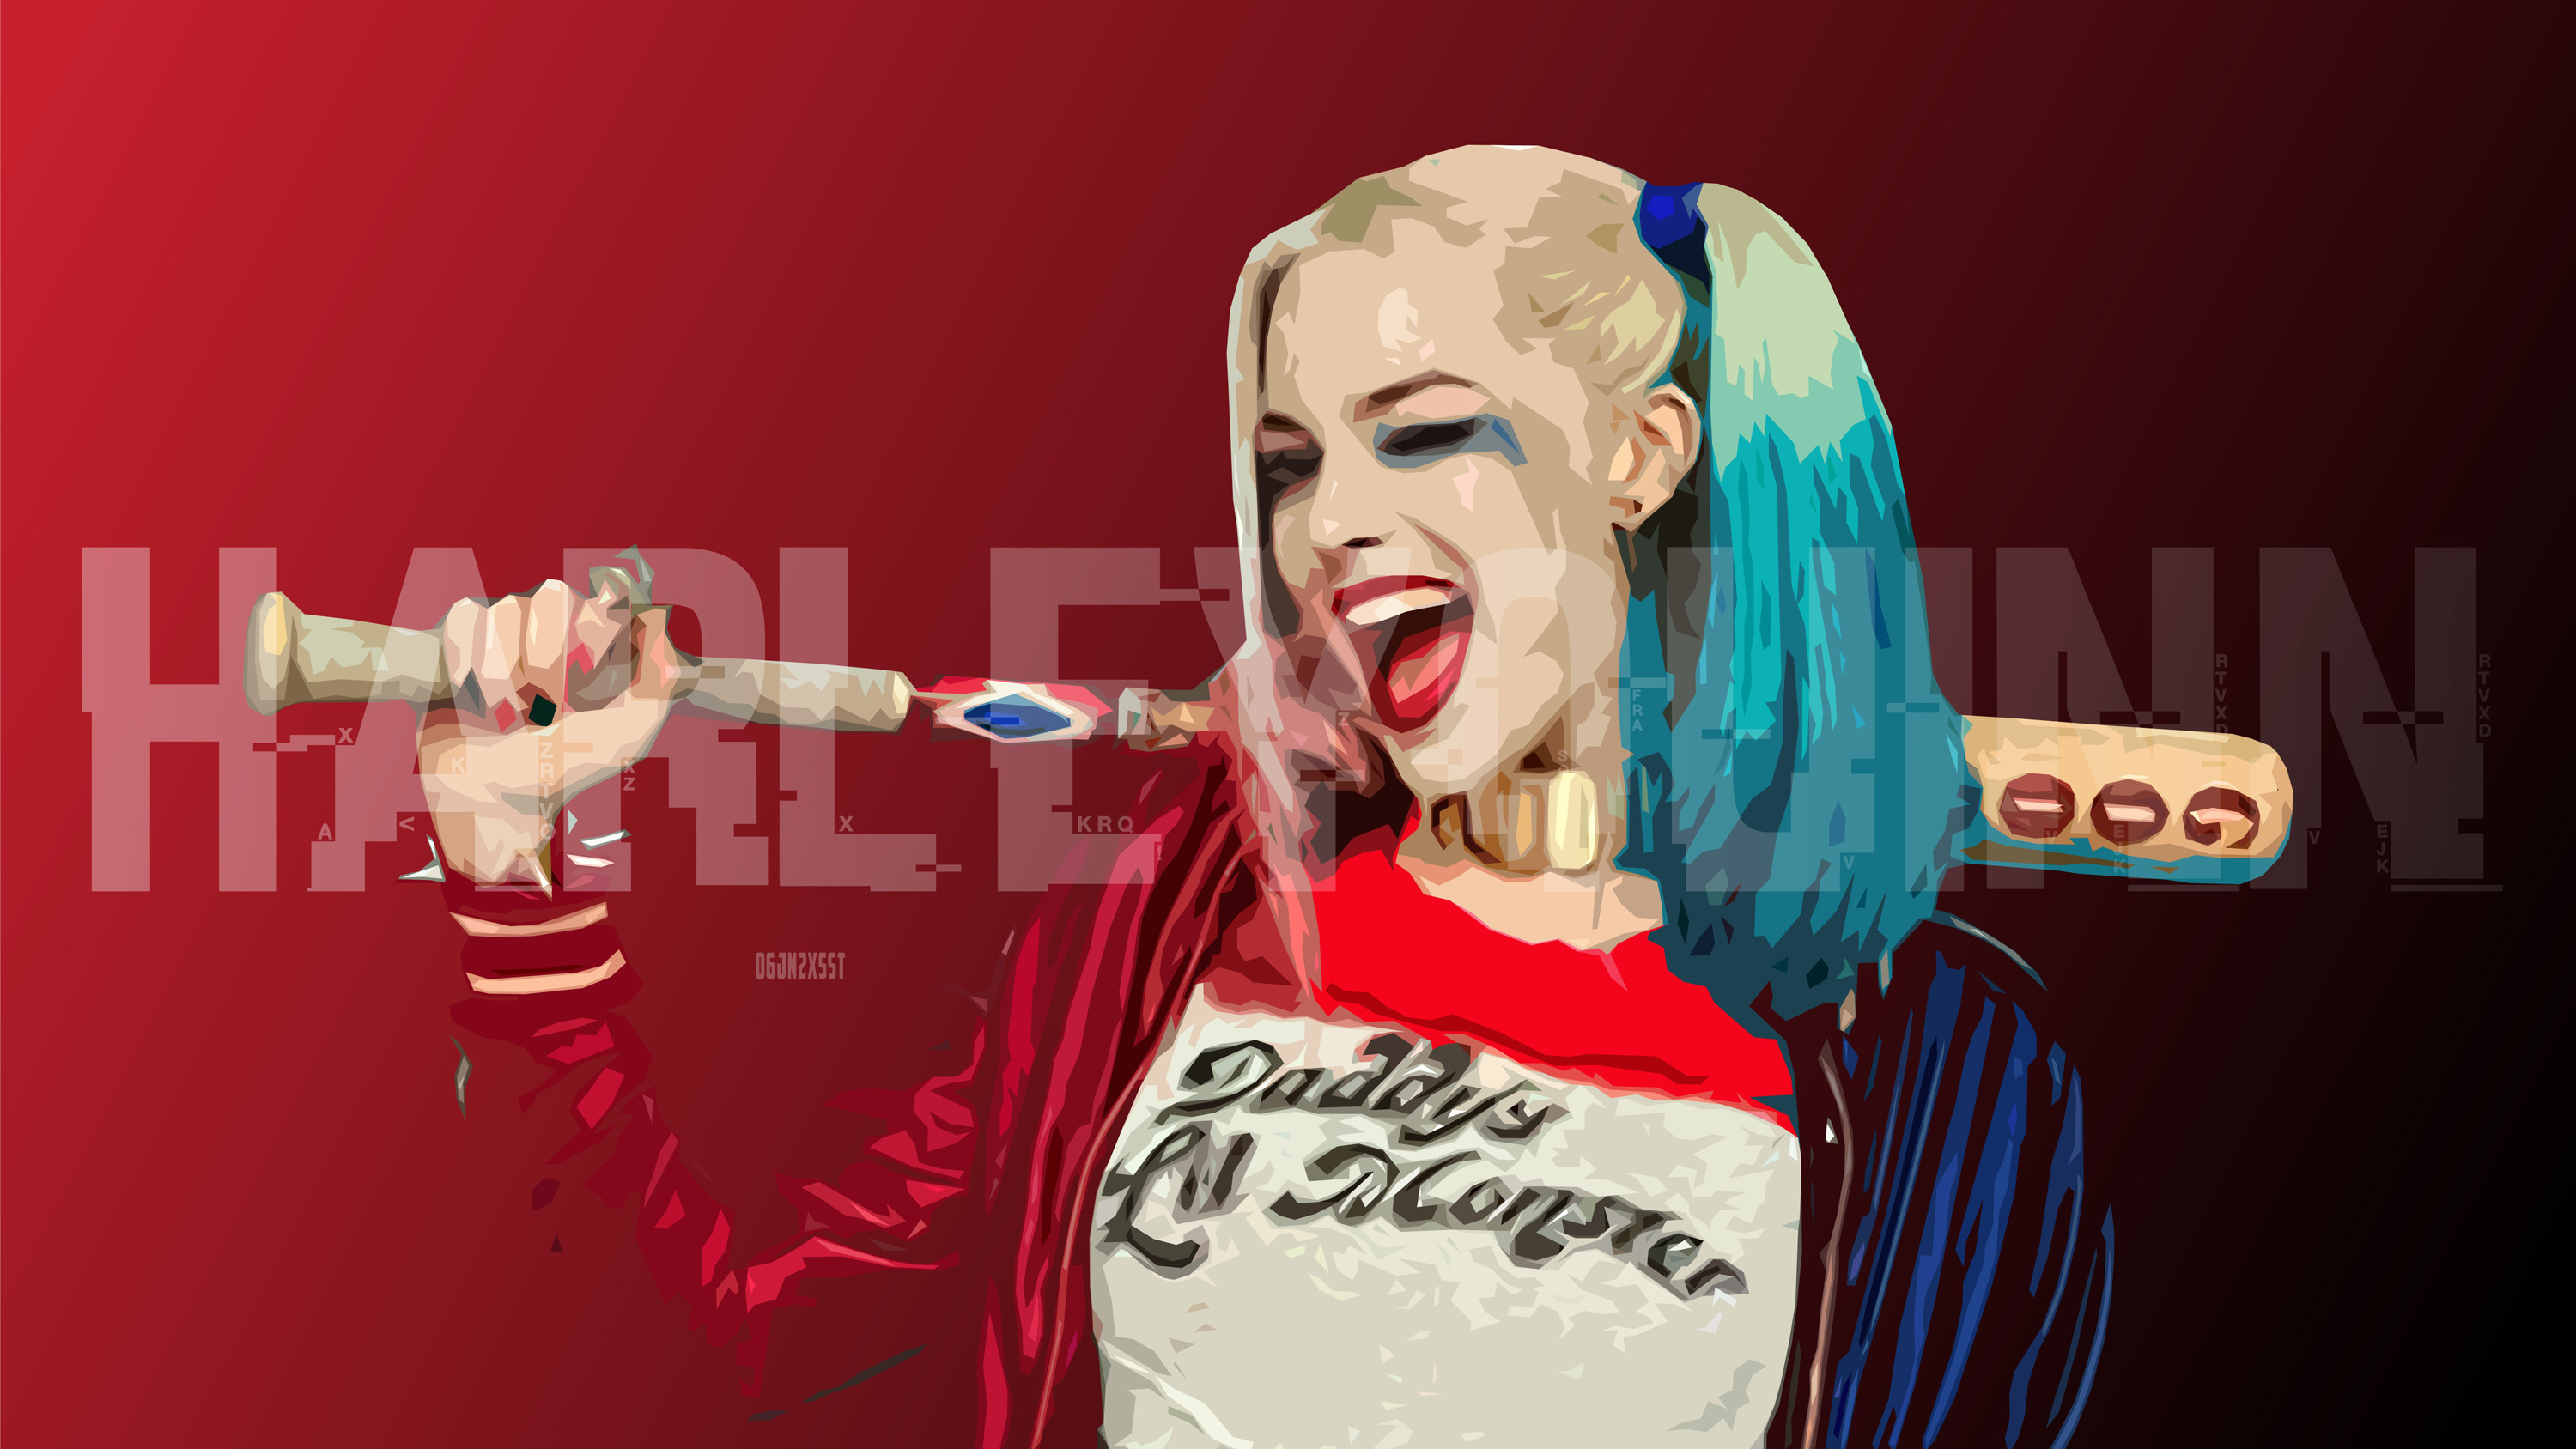 Wallpaper Hd Suicide Squad Harley Quinn: Harley Quinn Wallpapers (69+ Images